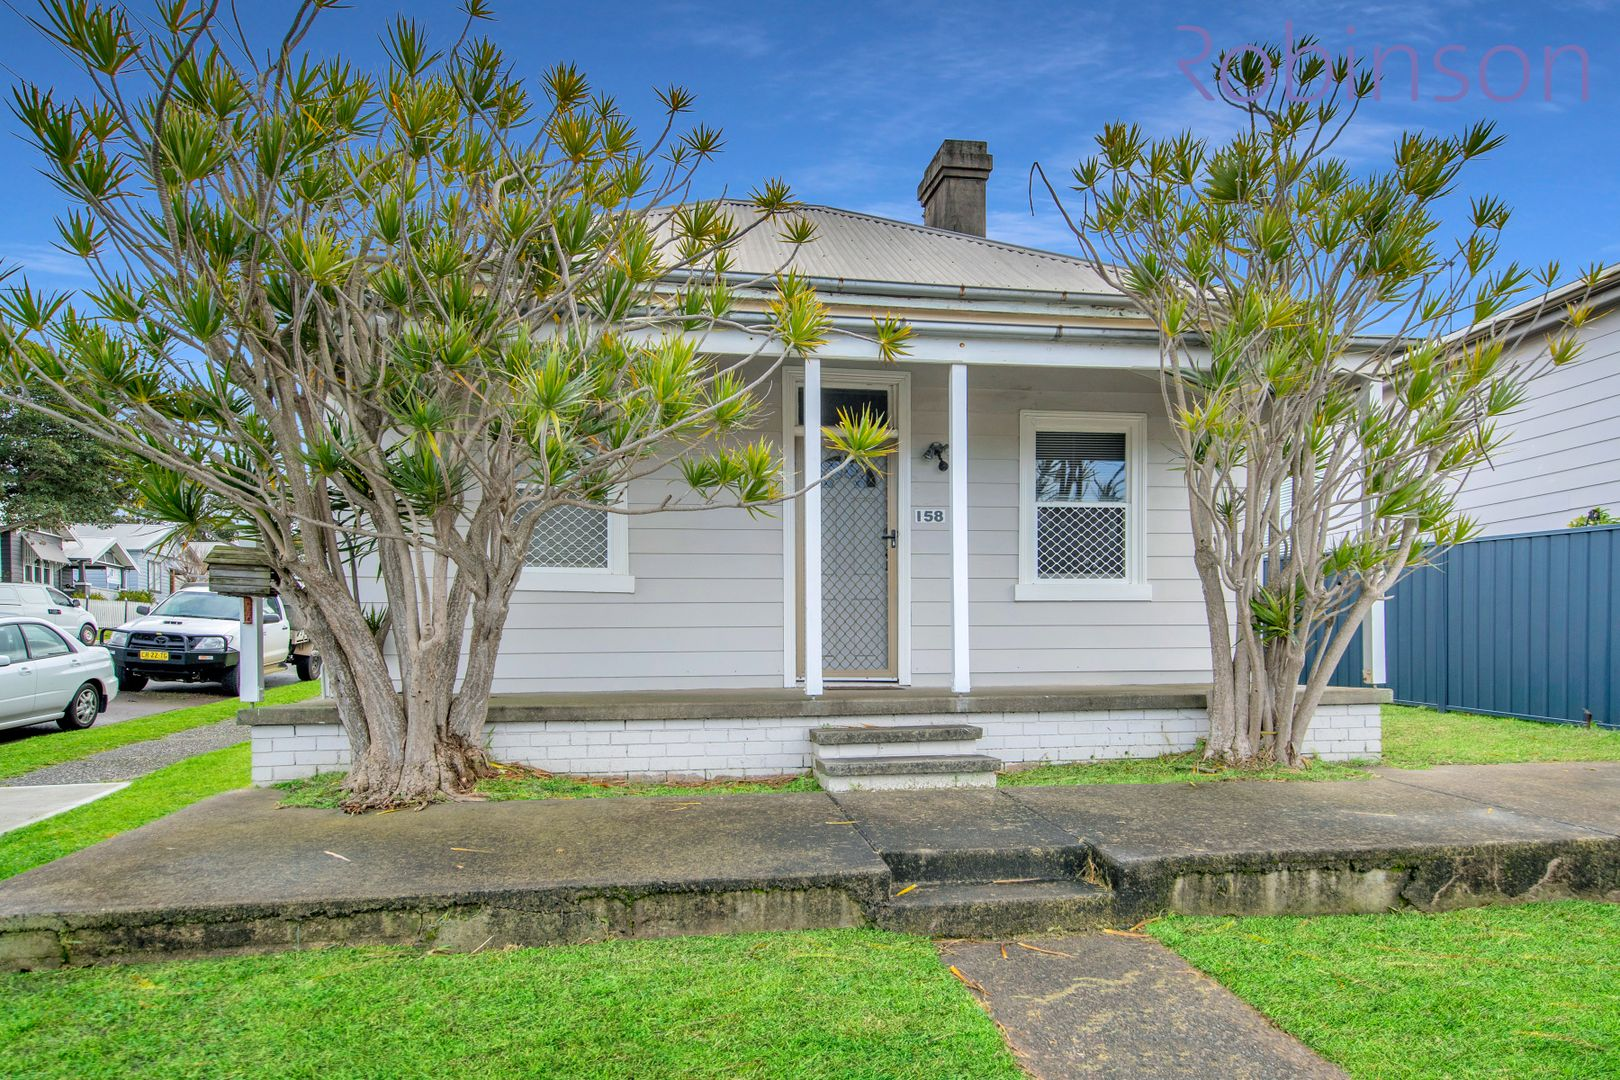 158 Gosford Road, Adamstown NSW 2289, Image 0